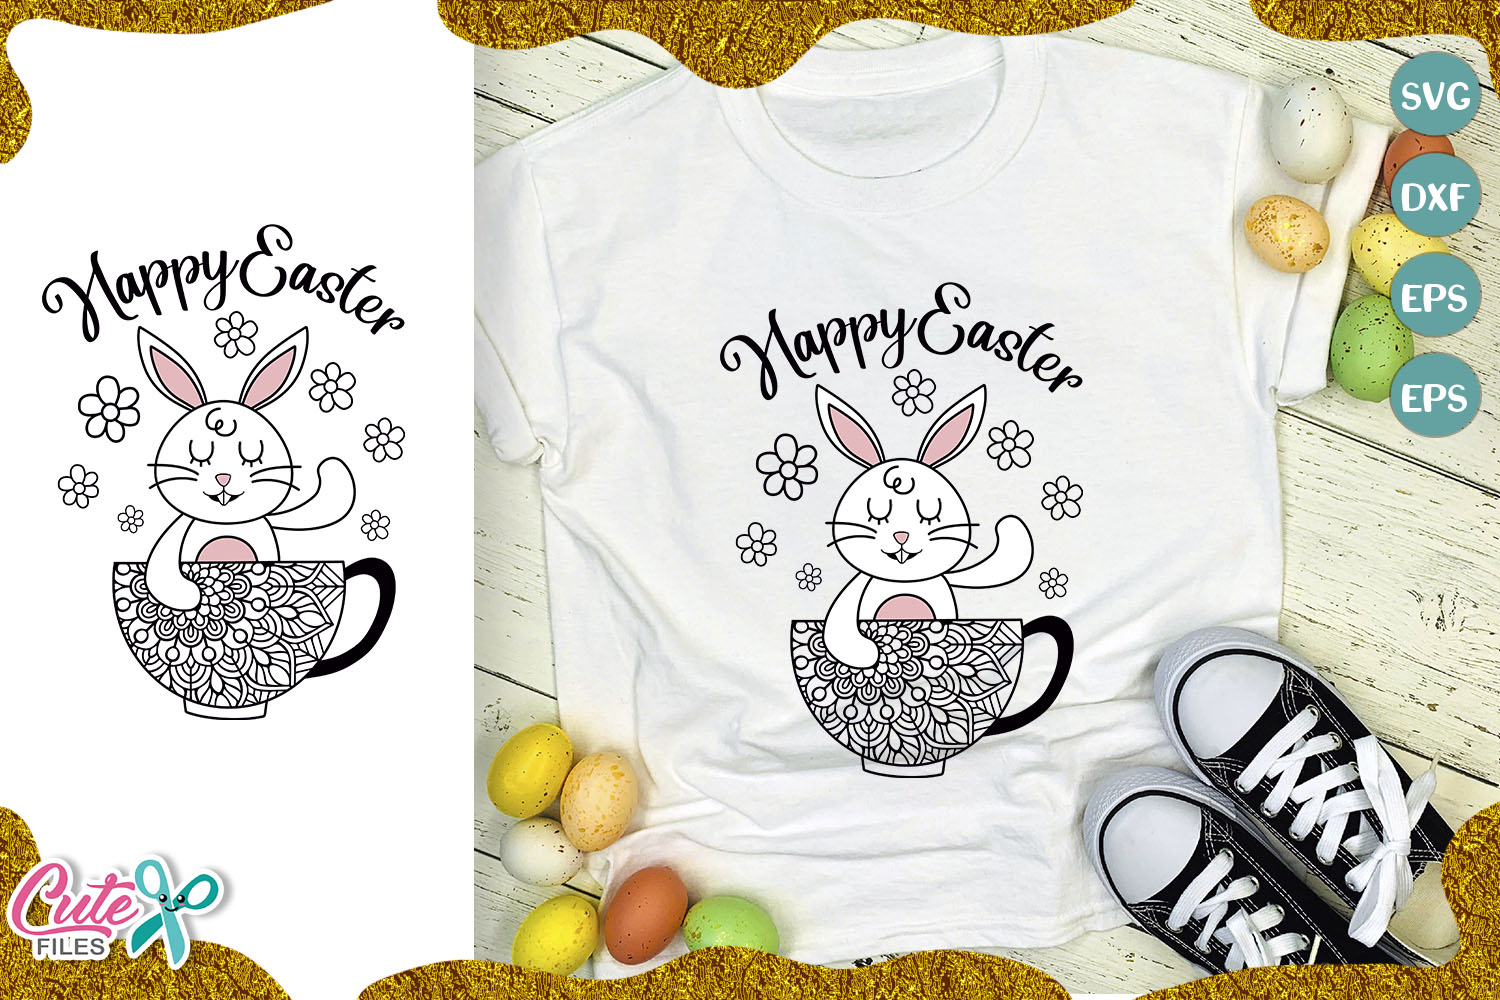 Download Free Happy Easter Graphic By Cute Files Creative Fabrica for Cricut Explore, Silhouette and other cutting machines.